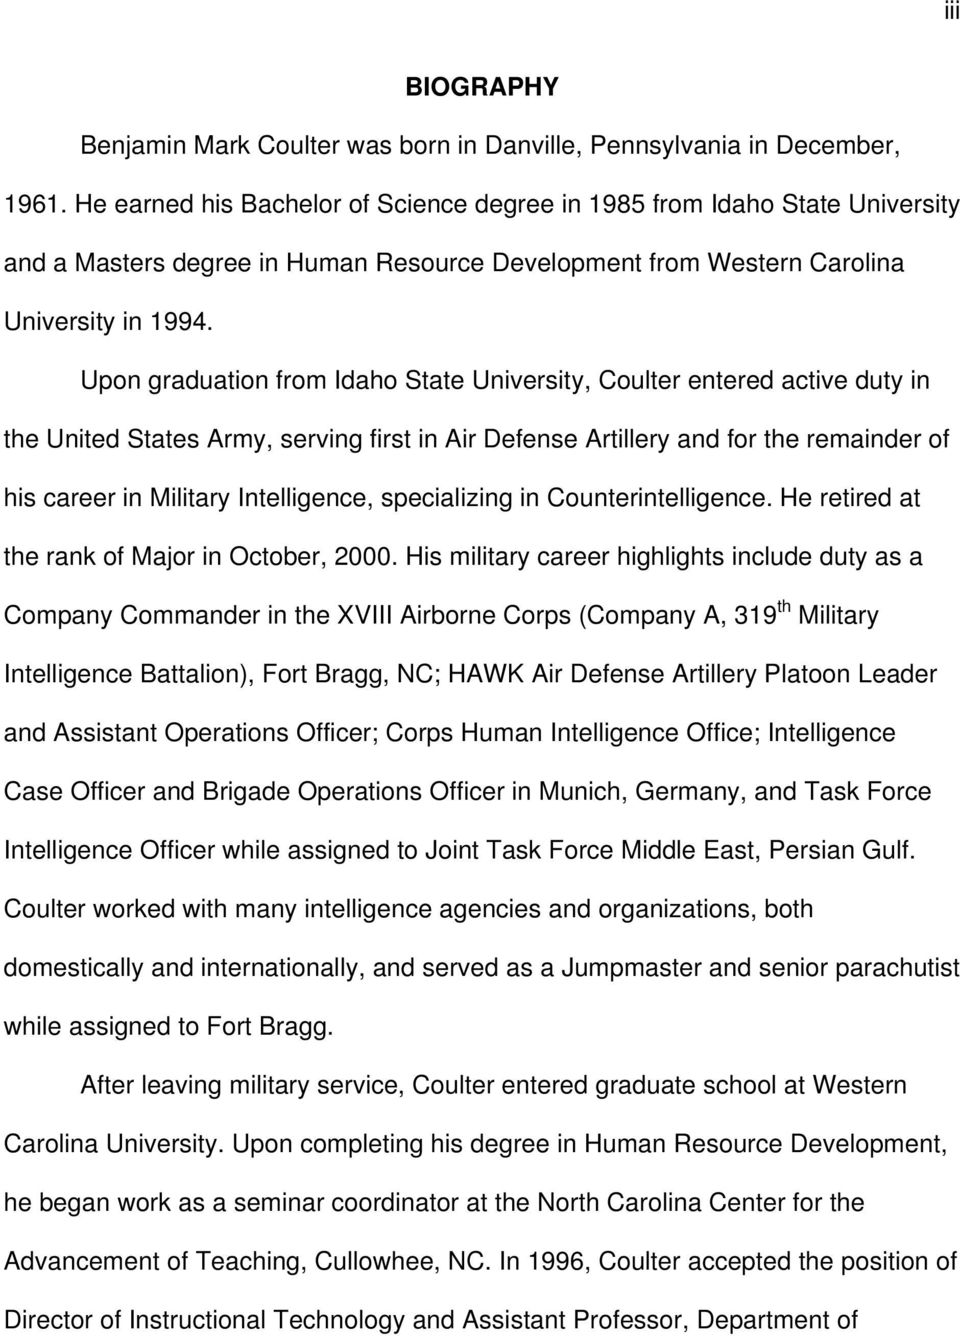 Upon graduation from Idaho State University, Coulter entered active duty in the United States Army, serving first in Air Defense Artillery and for the remainder of his career in Military